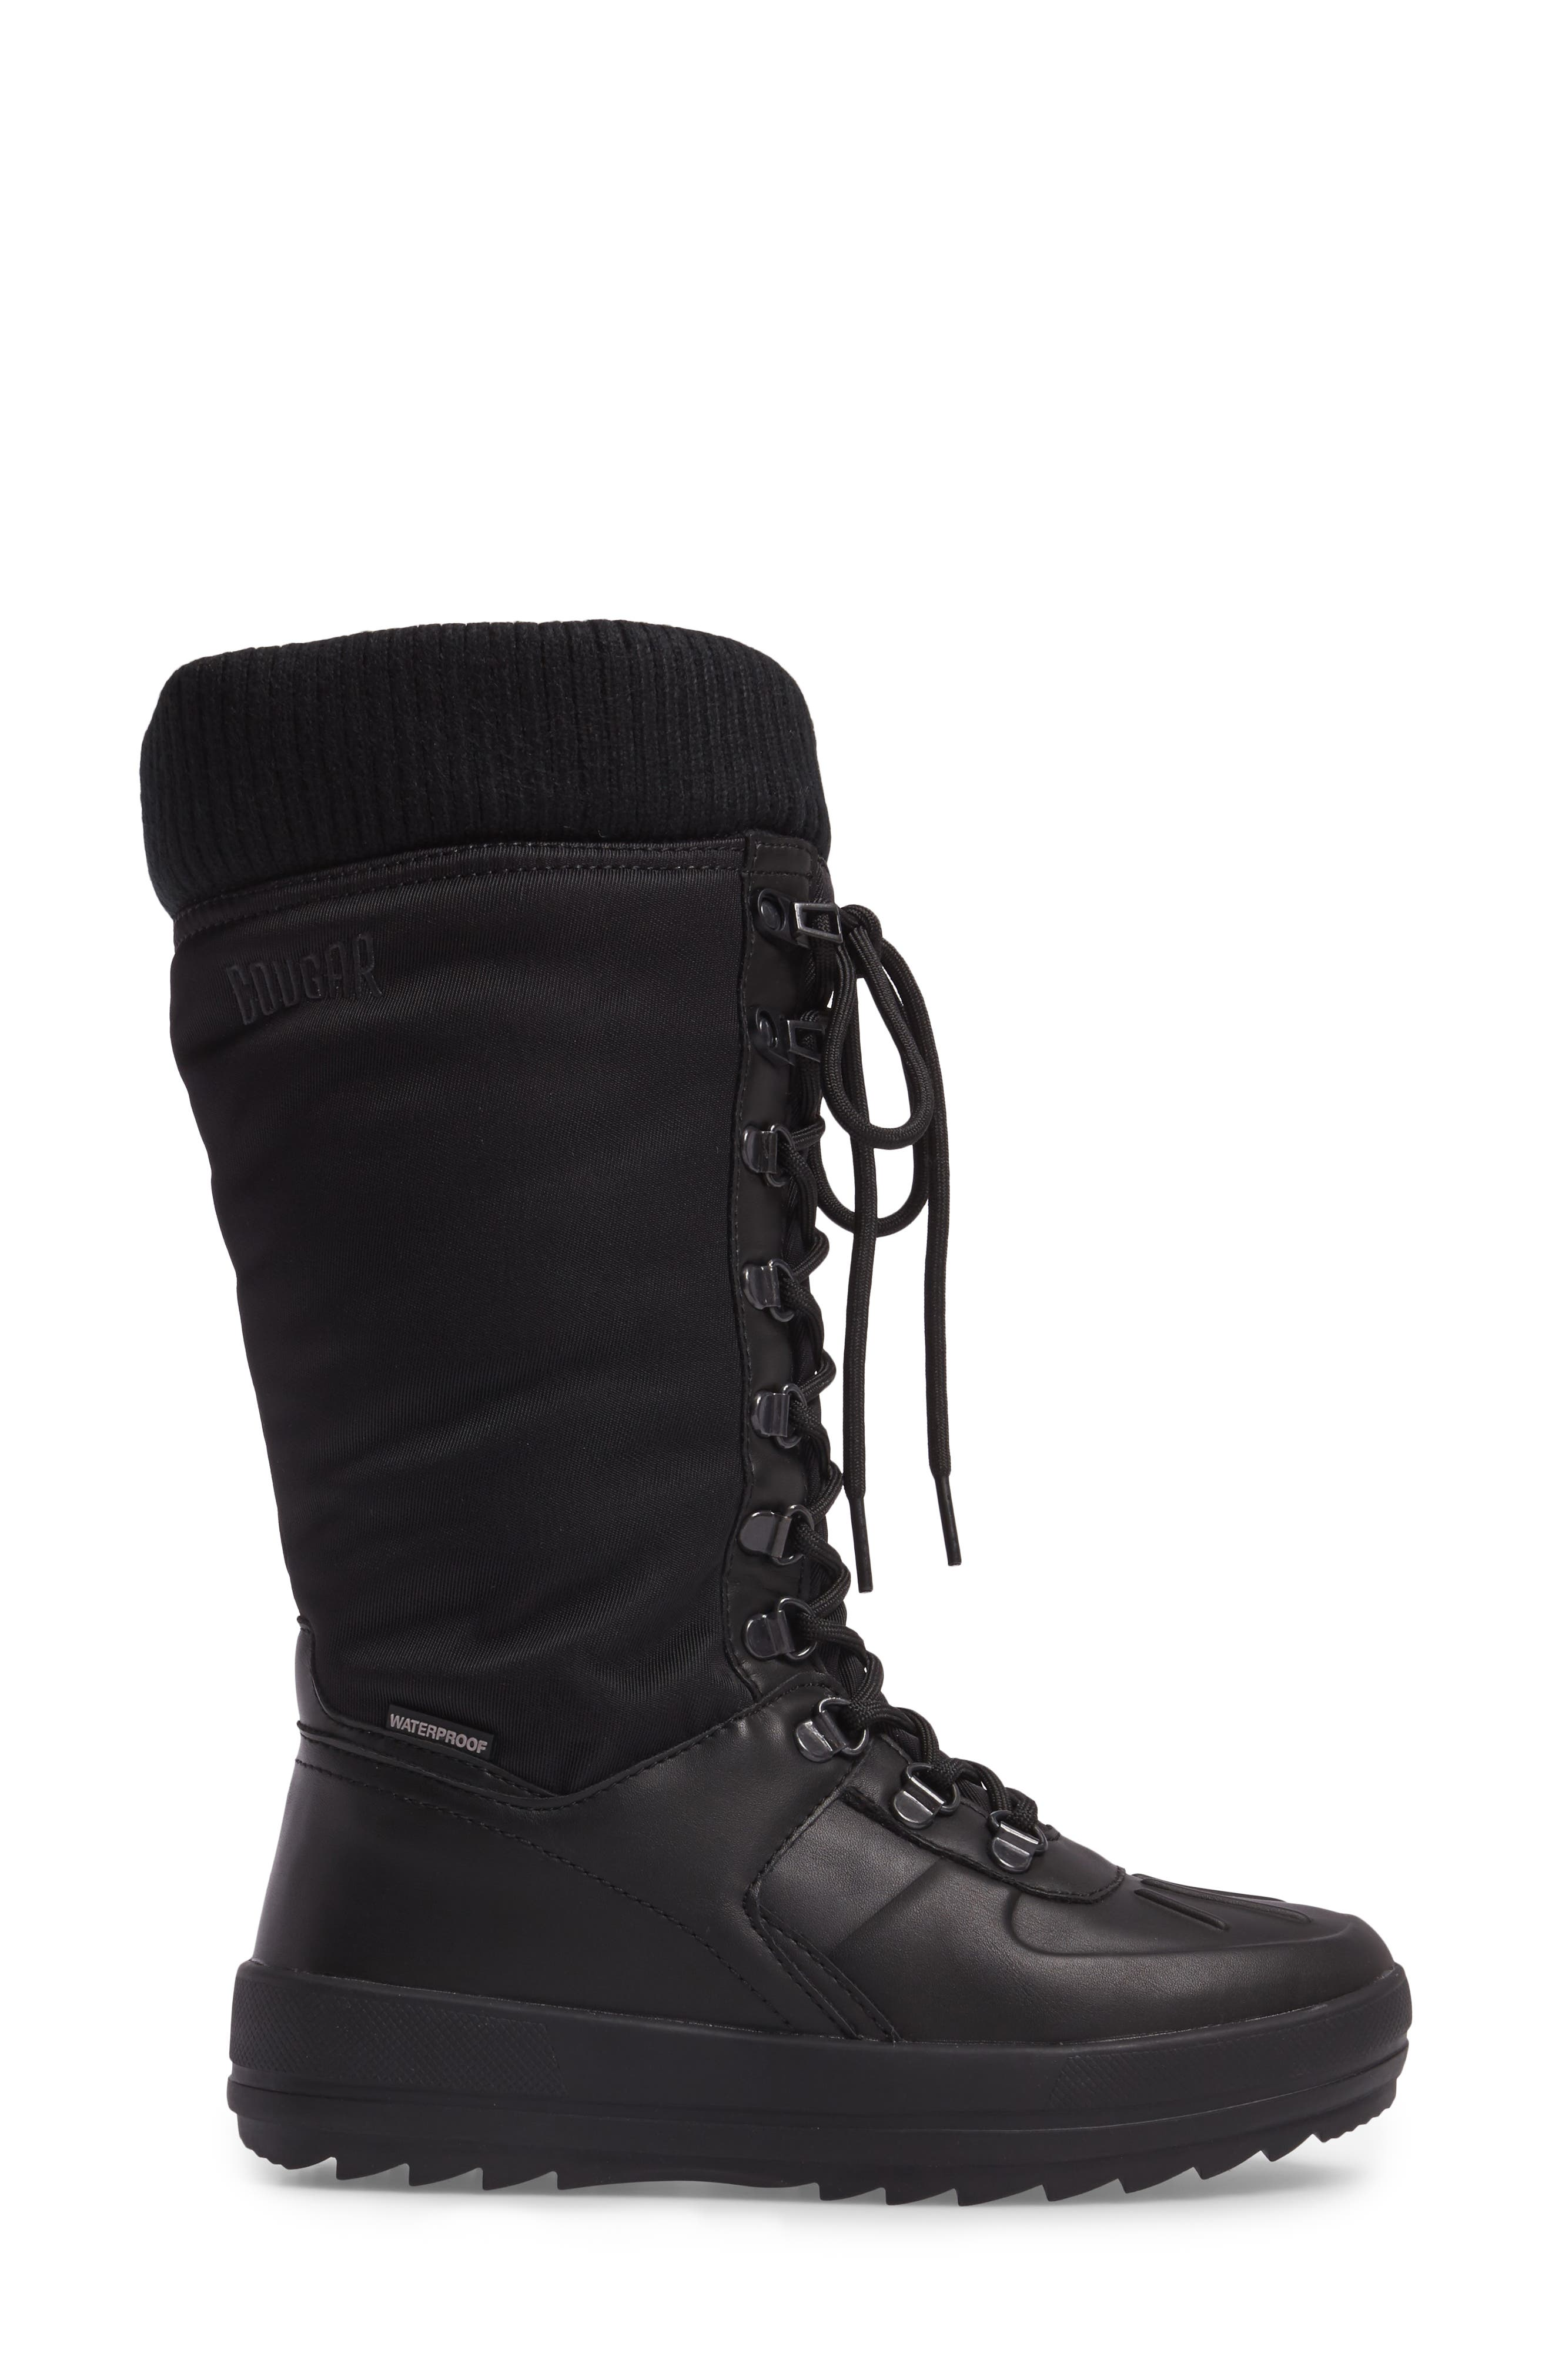 Vancouver Waterproof Winter Boot,                             Alternate thumbnail 3, color,                             Black All Over